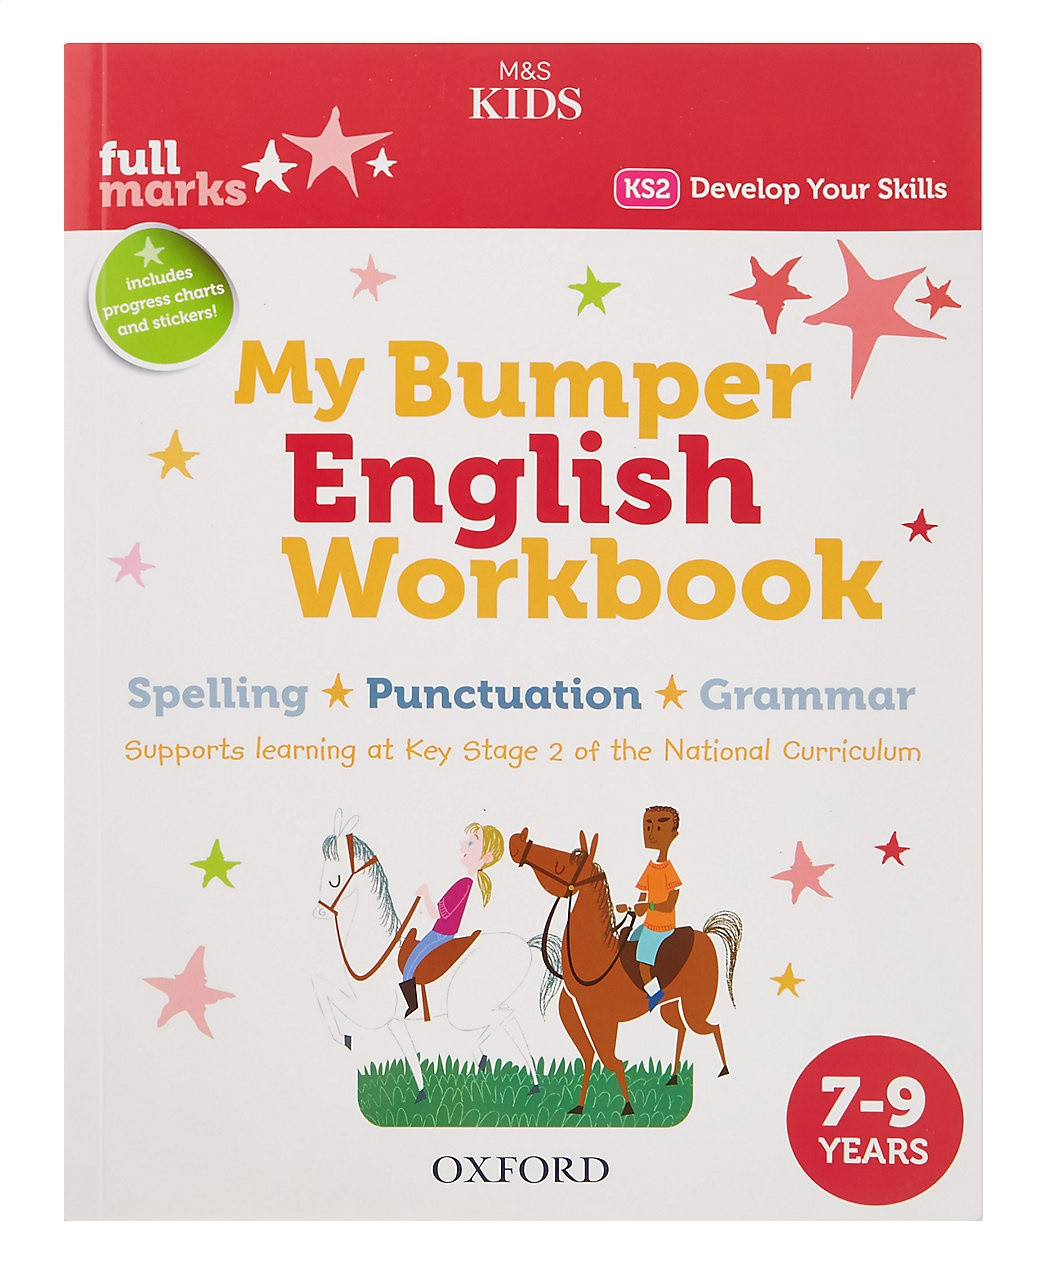 Workbooks key stage 2 workbooks : My Bumper English Workbook